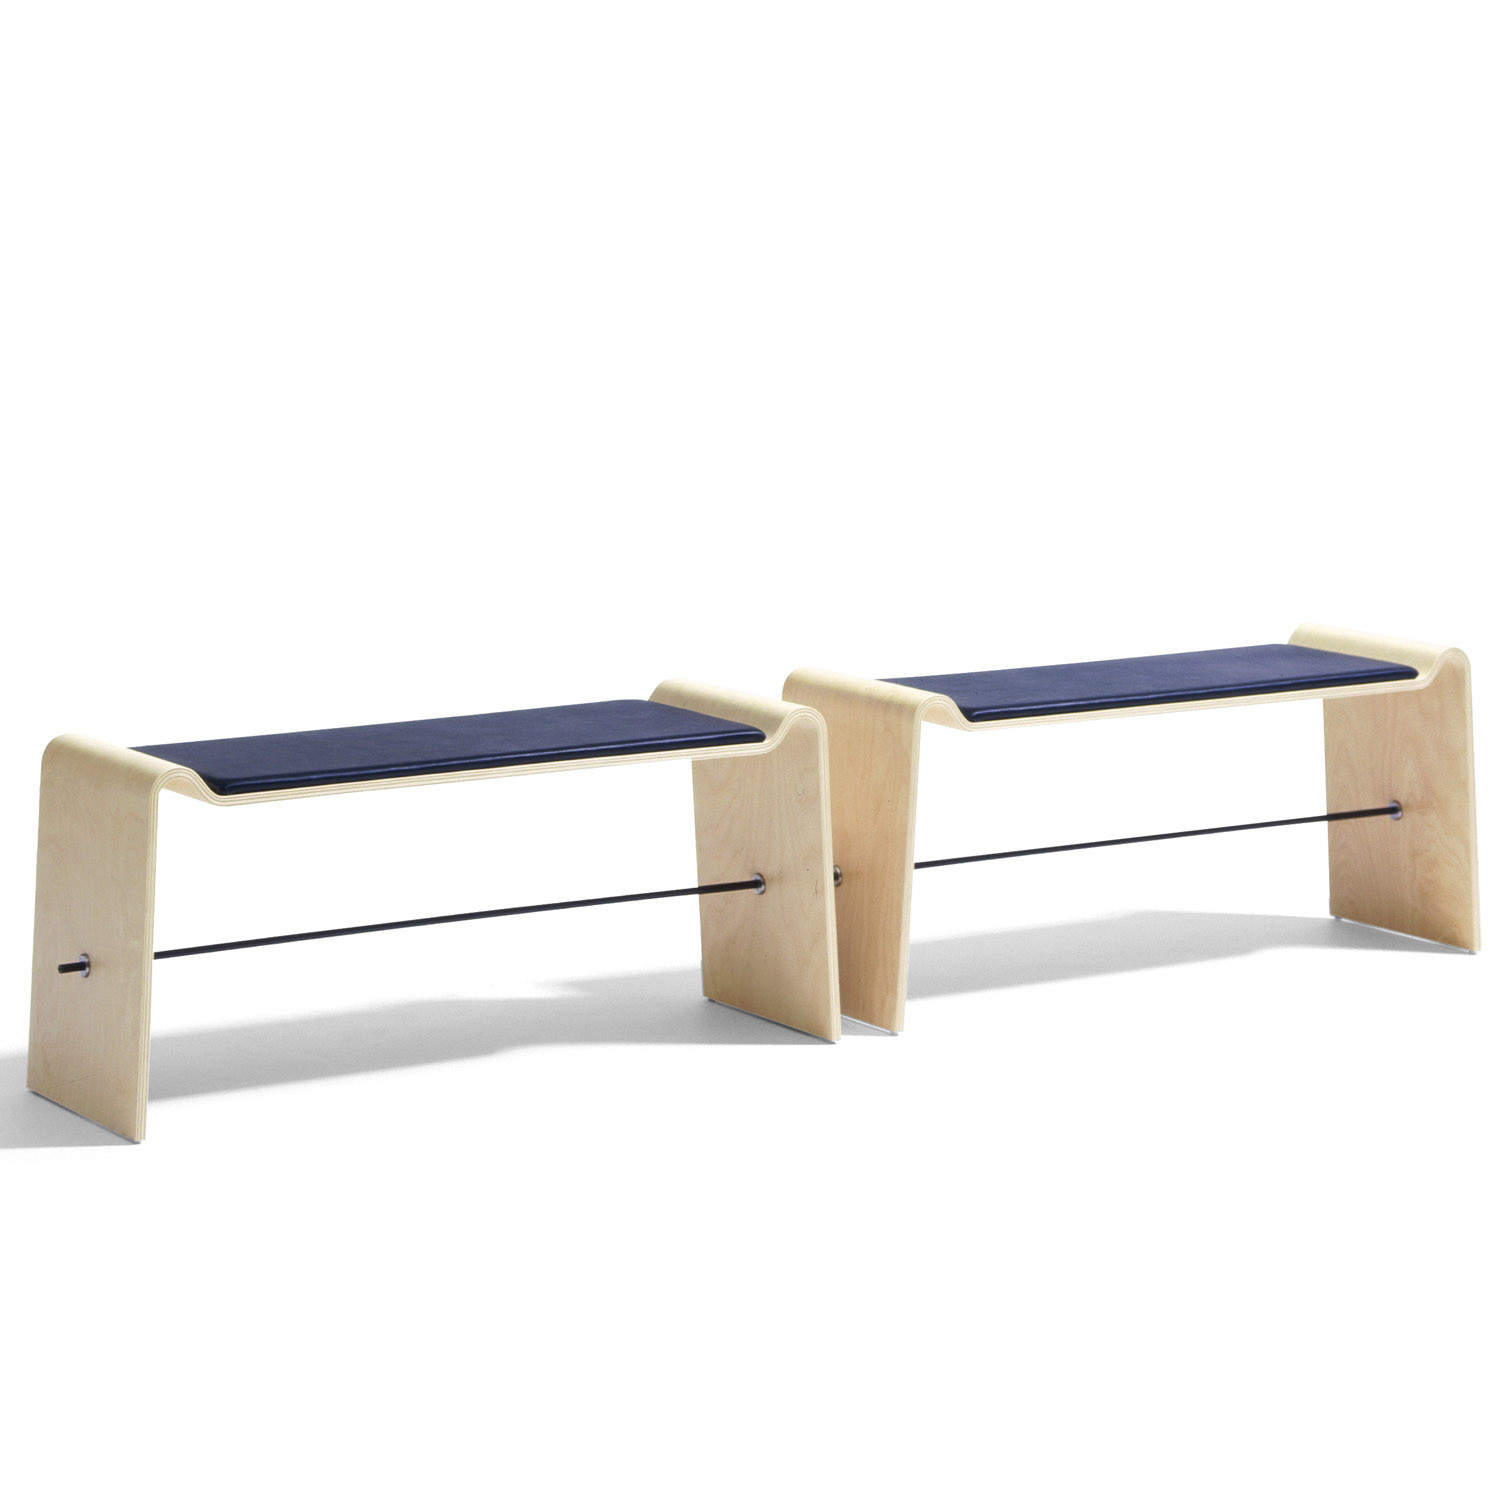 Sondag Linked Upholstered Benches